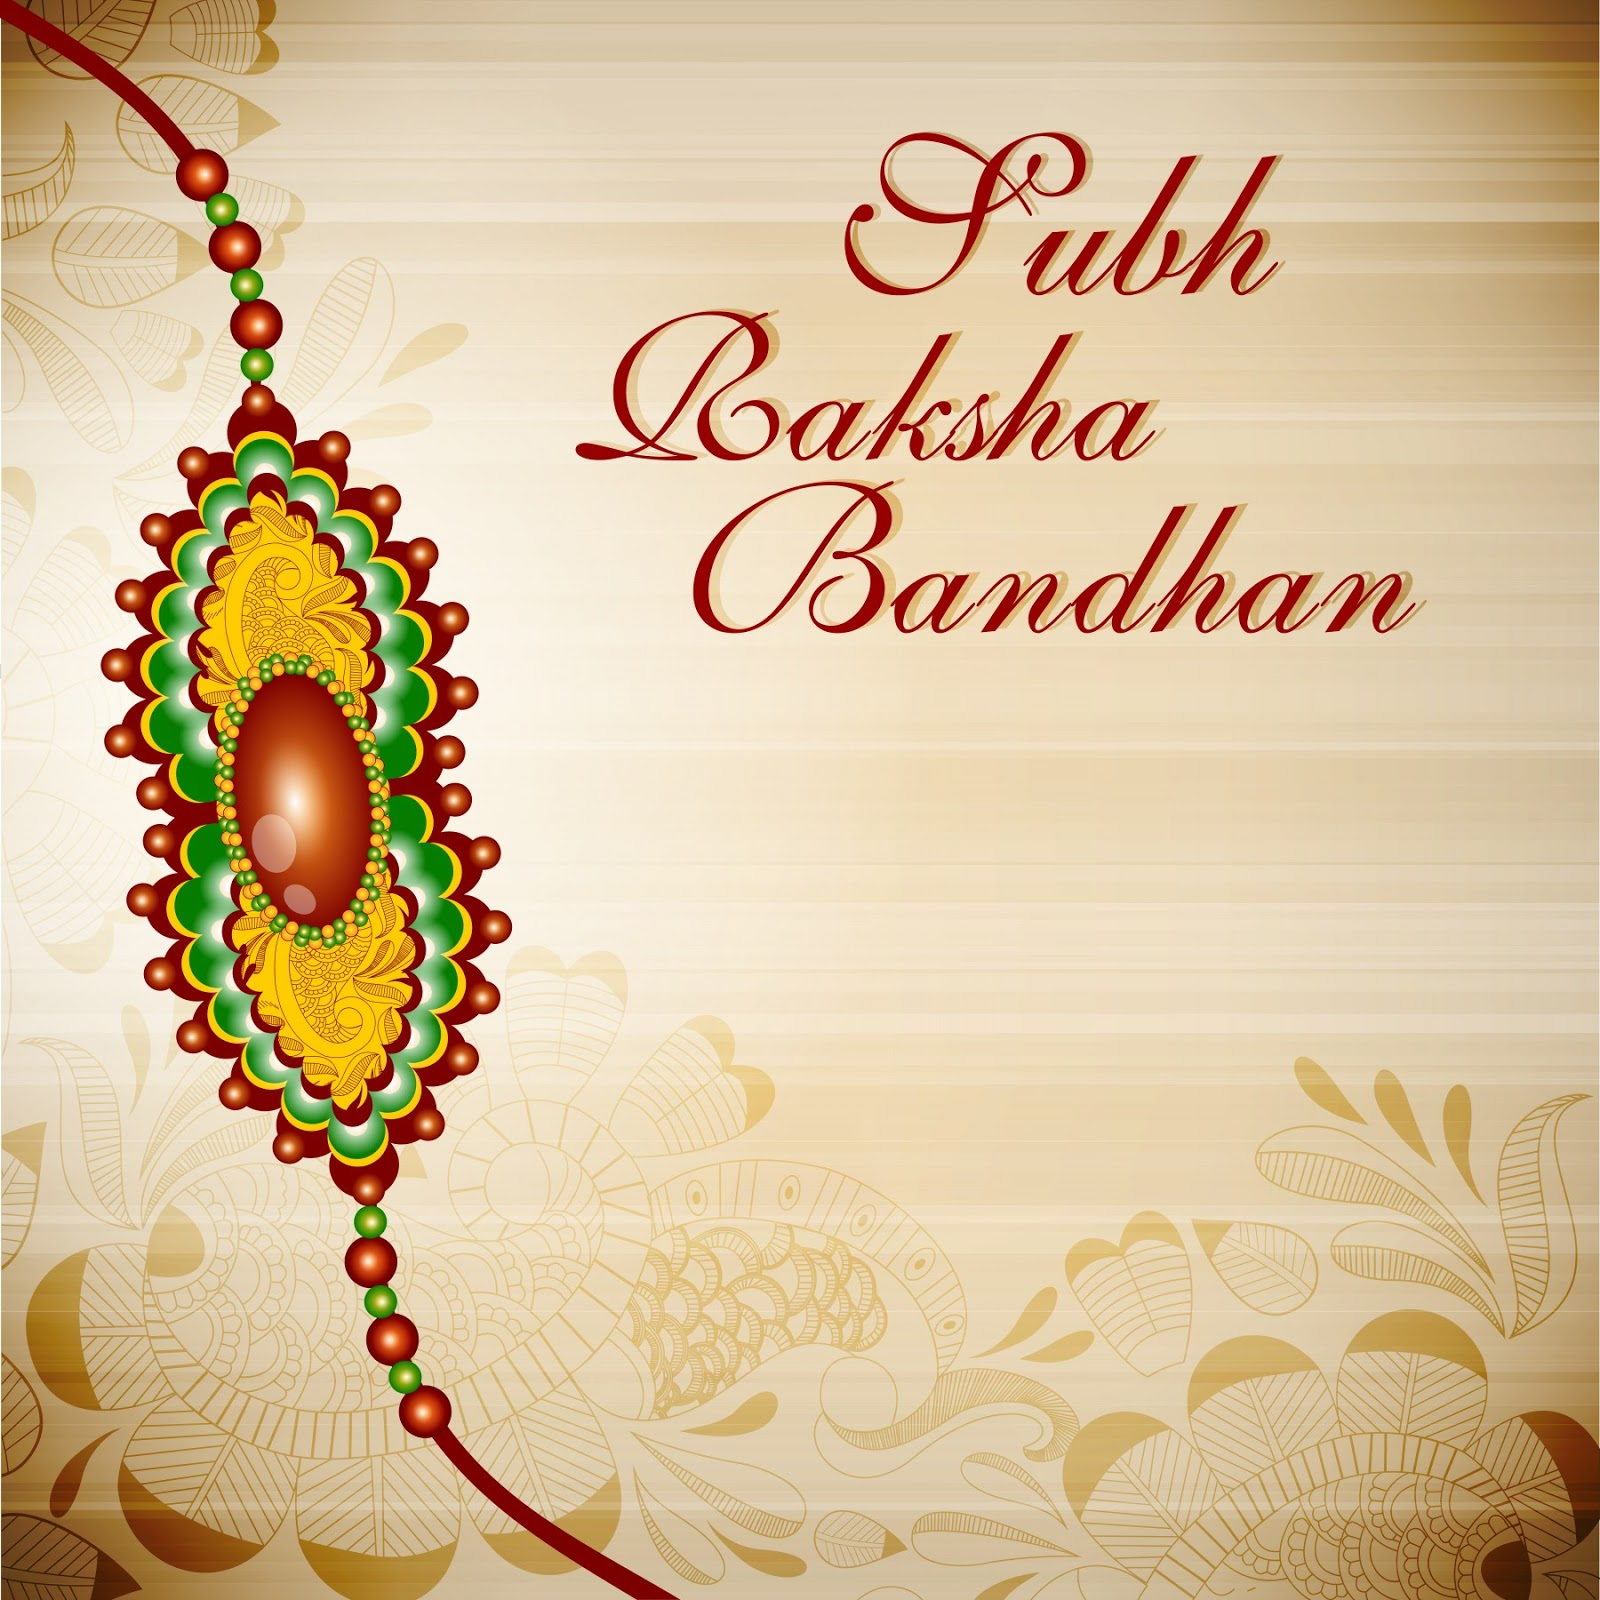 July 2017 happy raksha bandhan images rakhi wishes raksha raksha bandhan dp whatsapp kristyandbryce Image collections